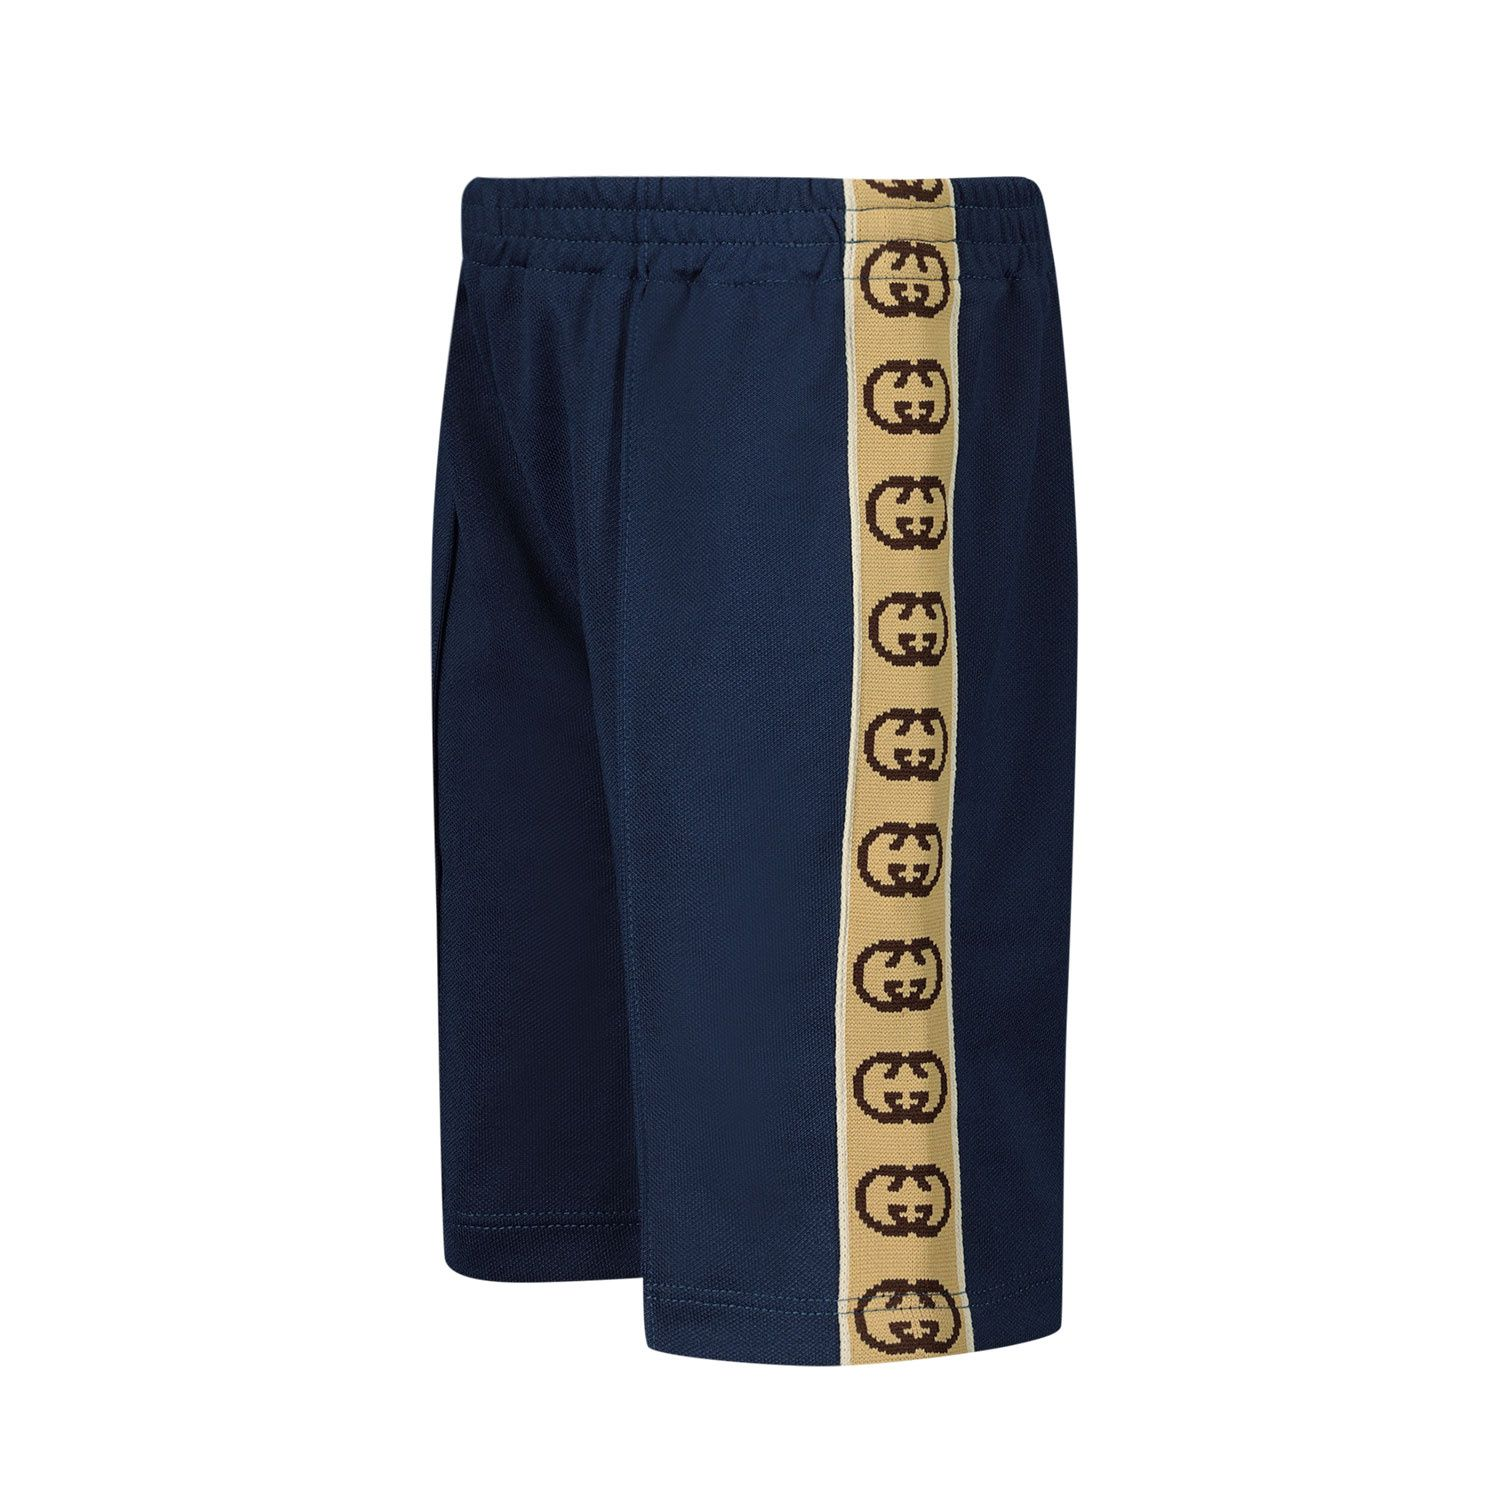 Picture of Gucci 616277 baby shorts blue